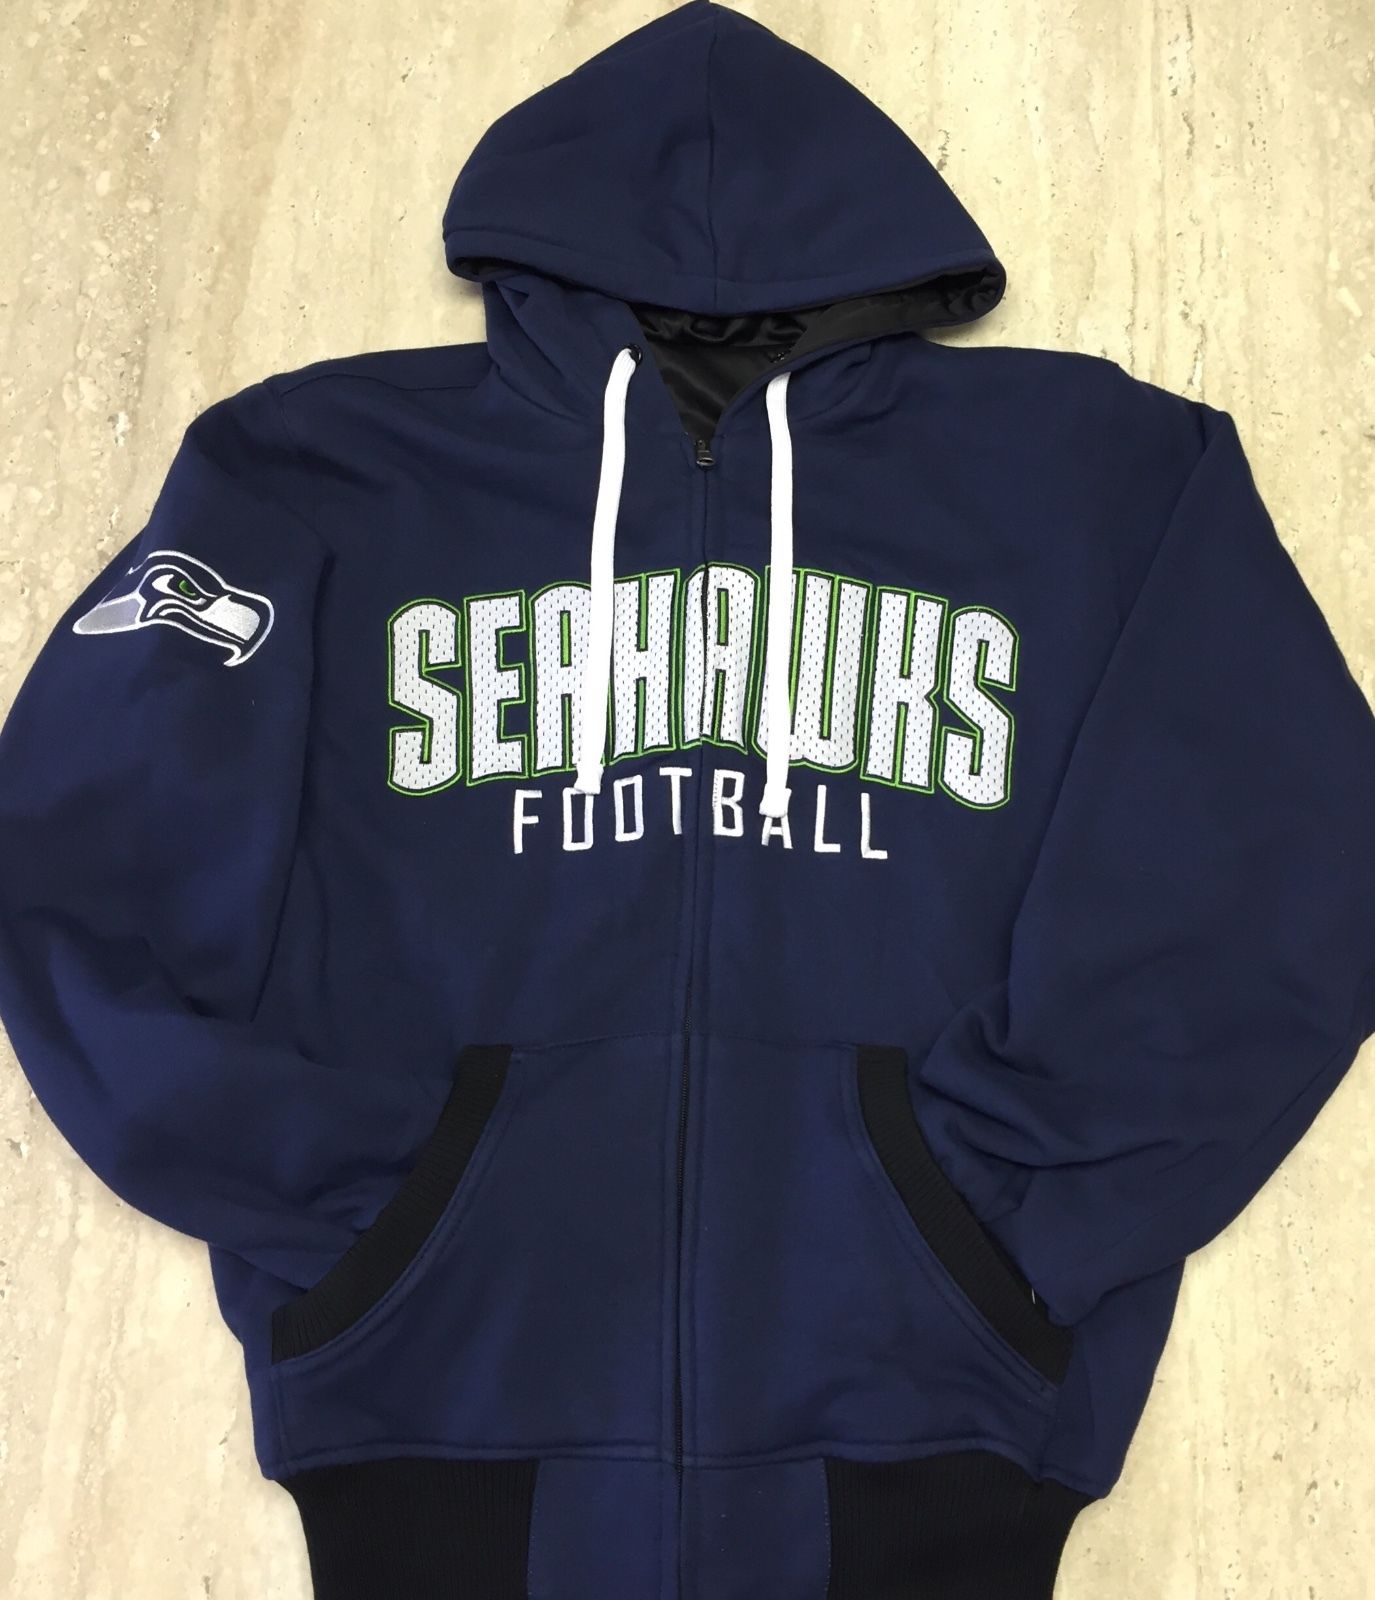 38eeb15f Men's Seattle Seahawks Official NFL Reversible Hoodie